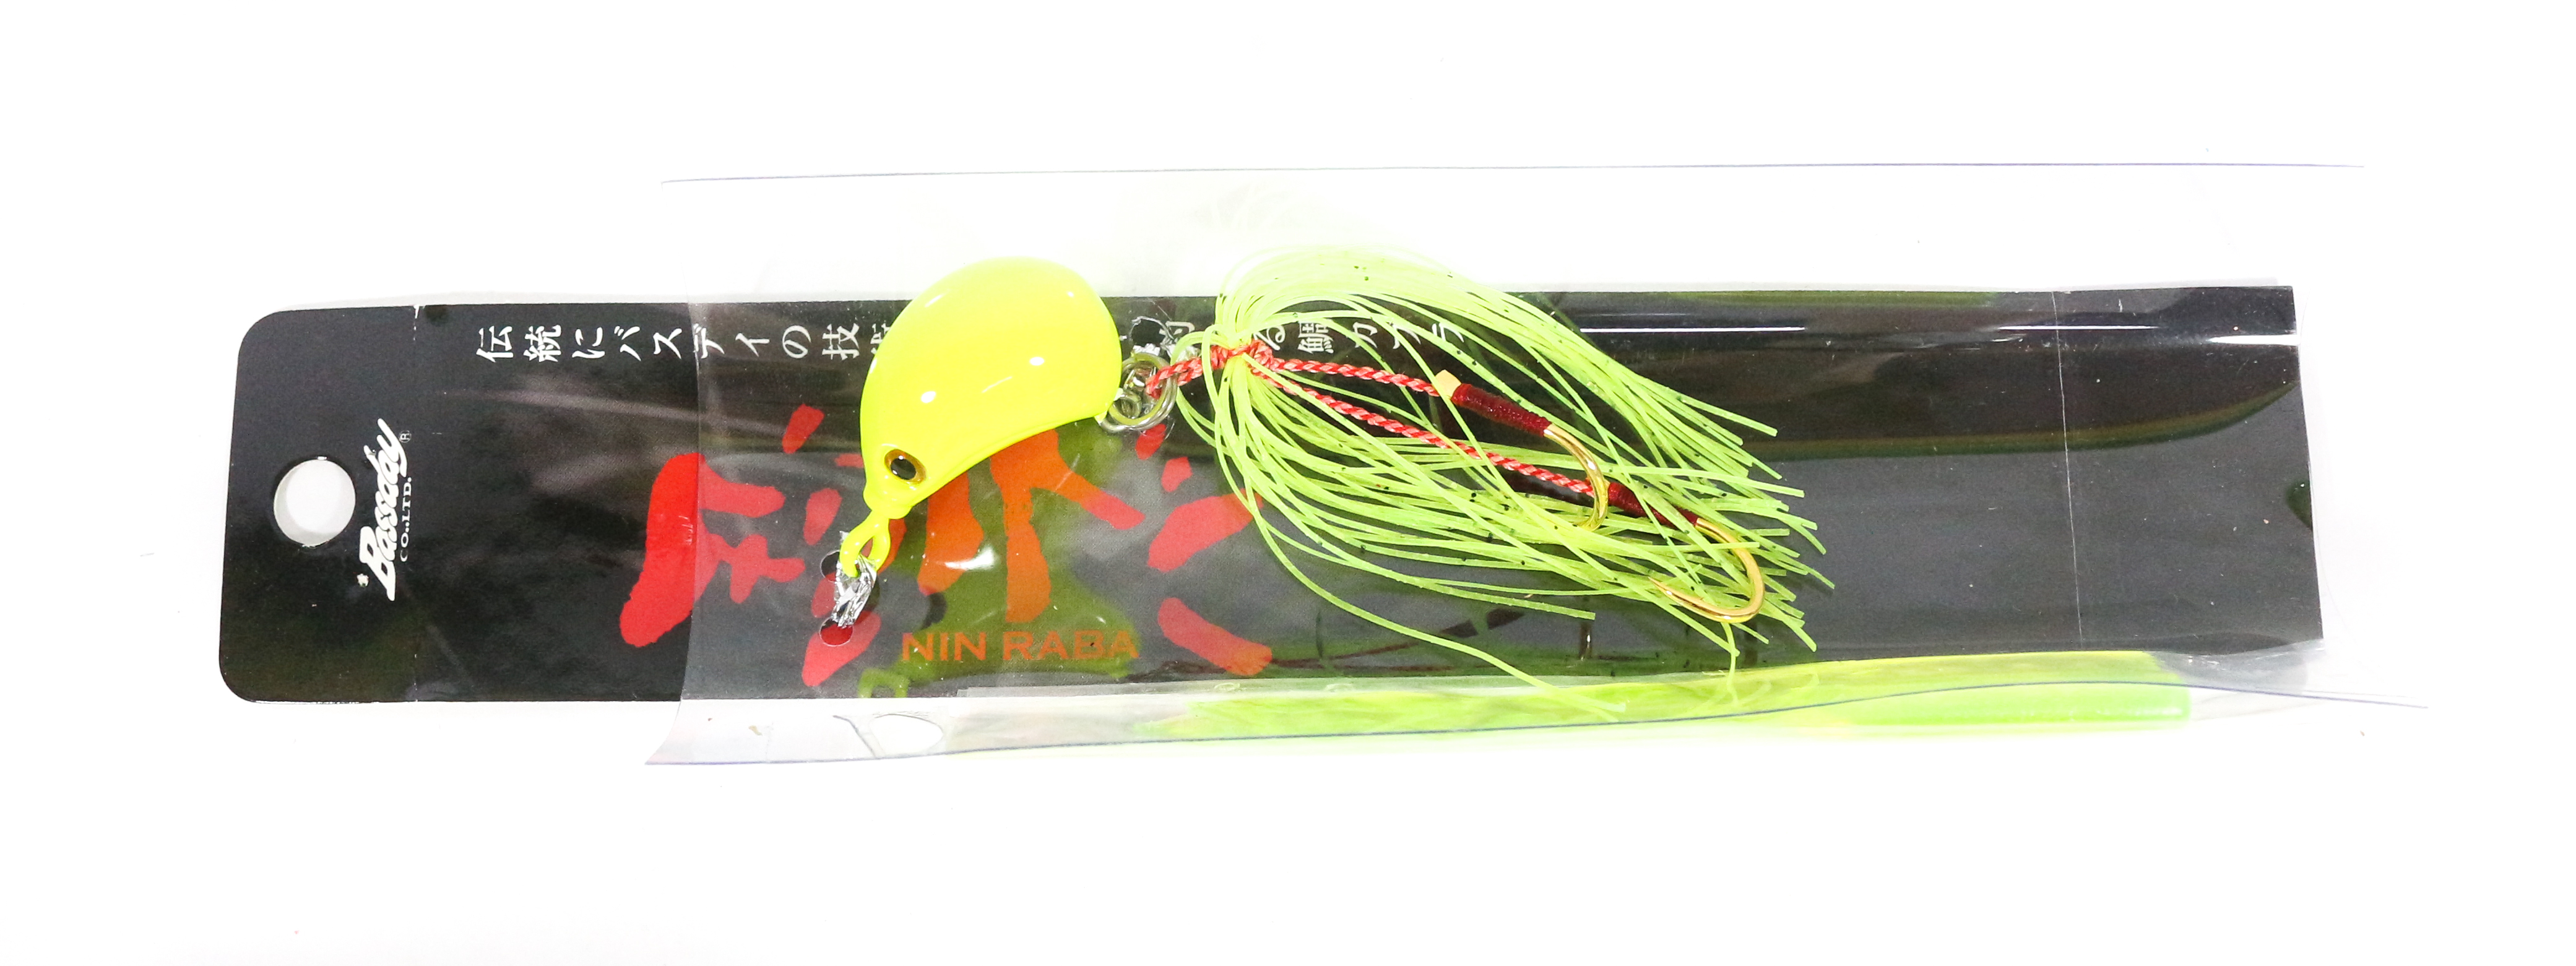 Bassday Nin Raba Madai Jig 40 grams P-57 (1079)